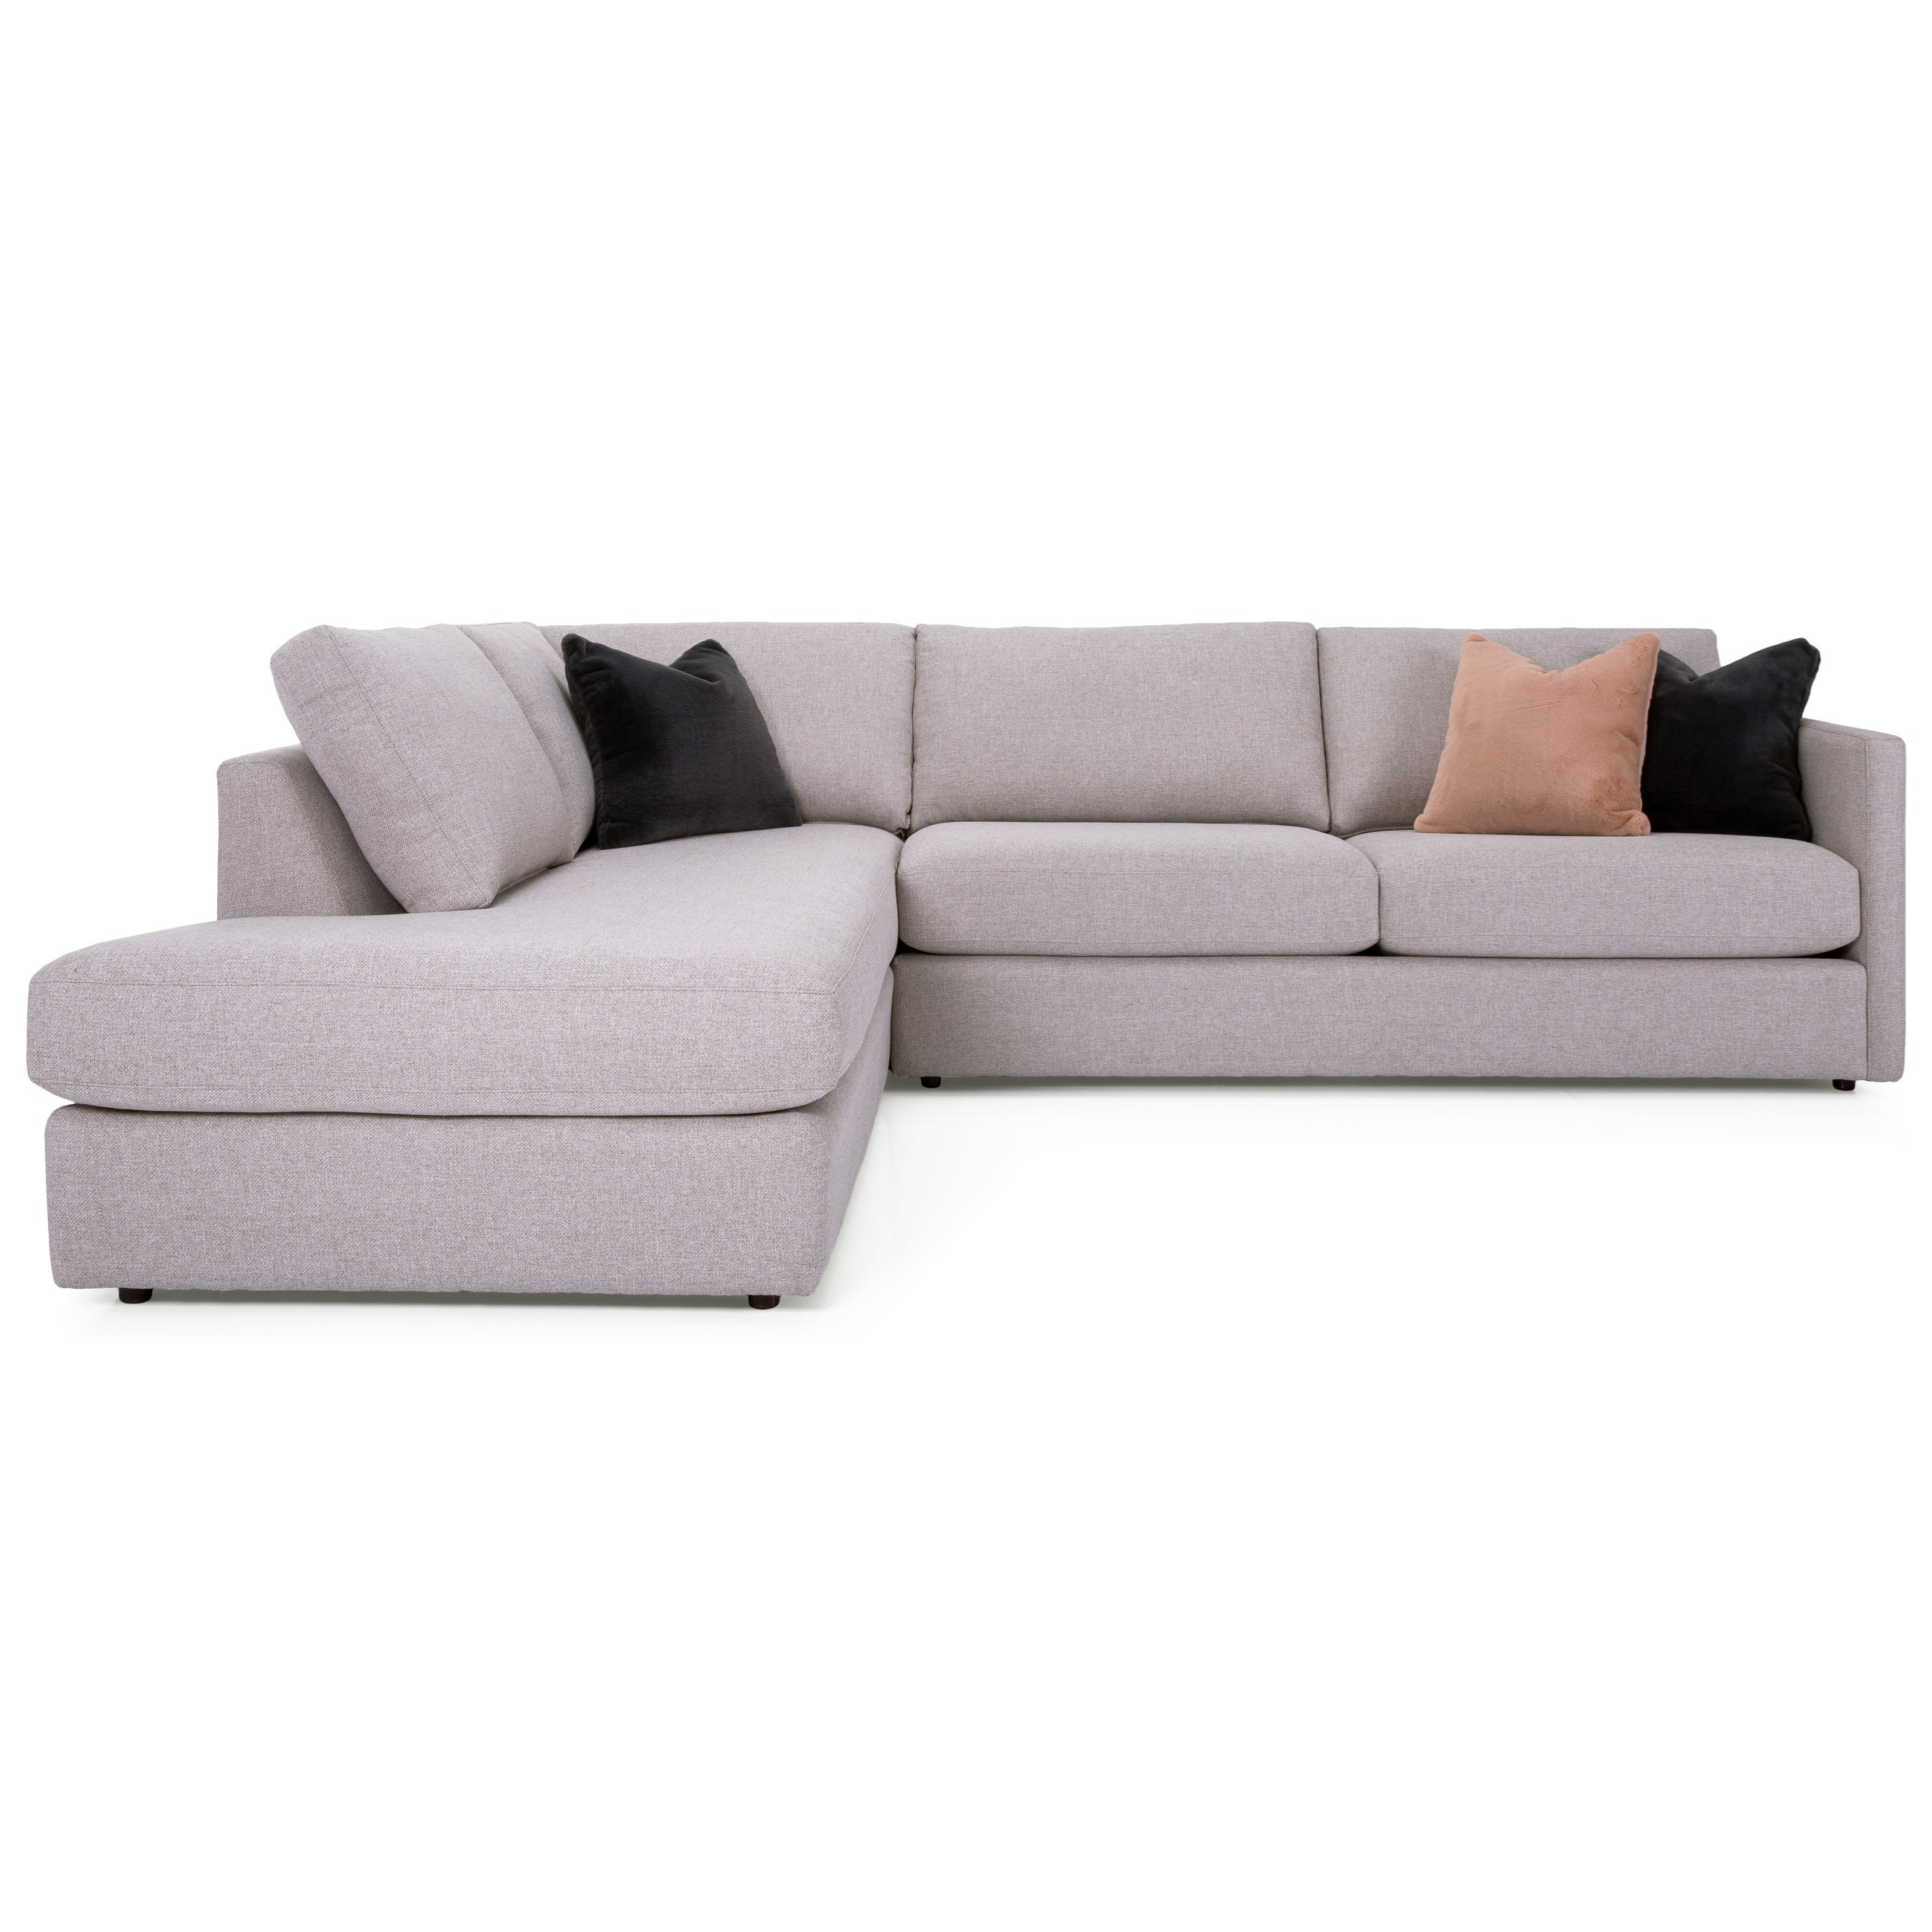 2068 Sectional with Chaise by Taelor Designs at Bennett's Furniture and Mattresses